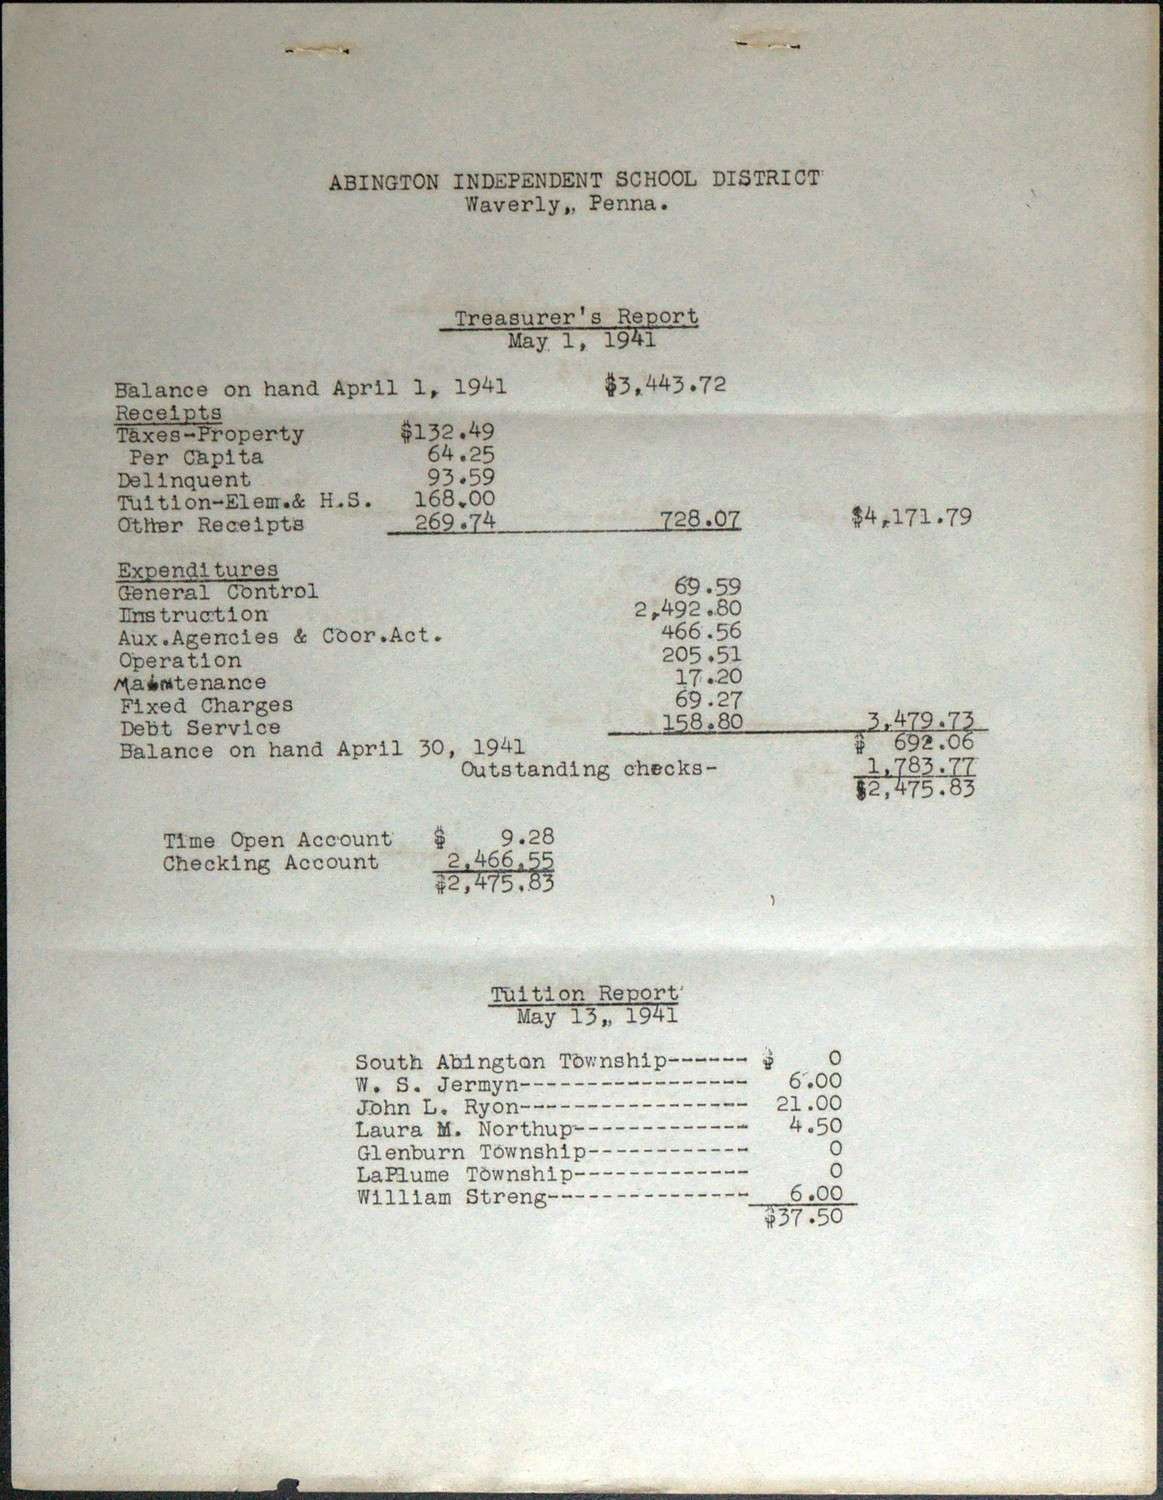 1941 Abington Independent School District Financial Document